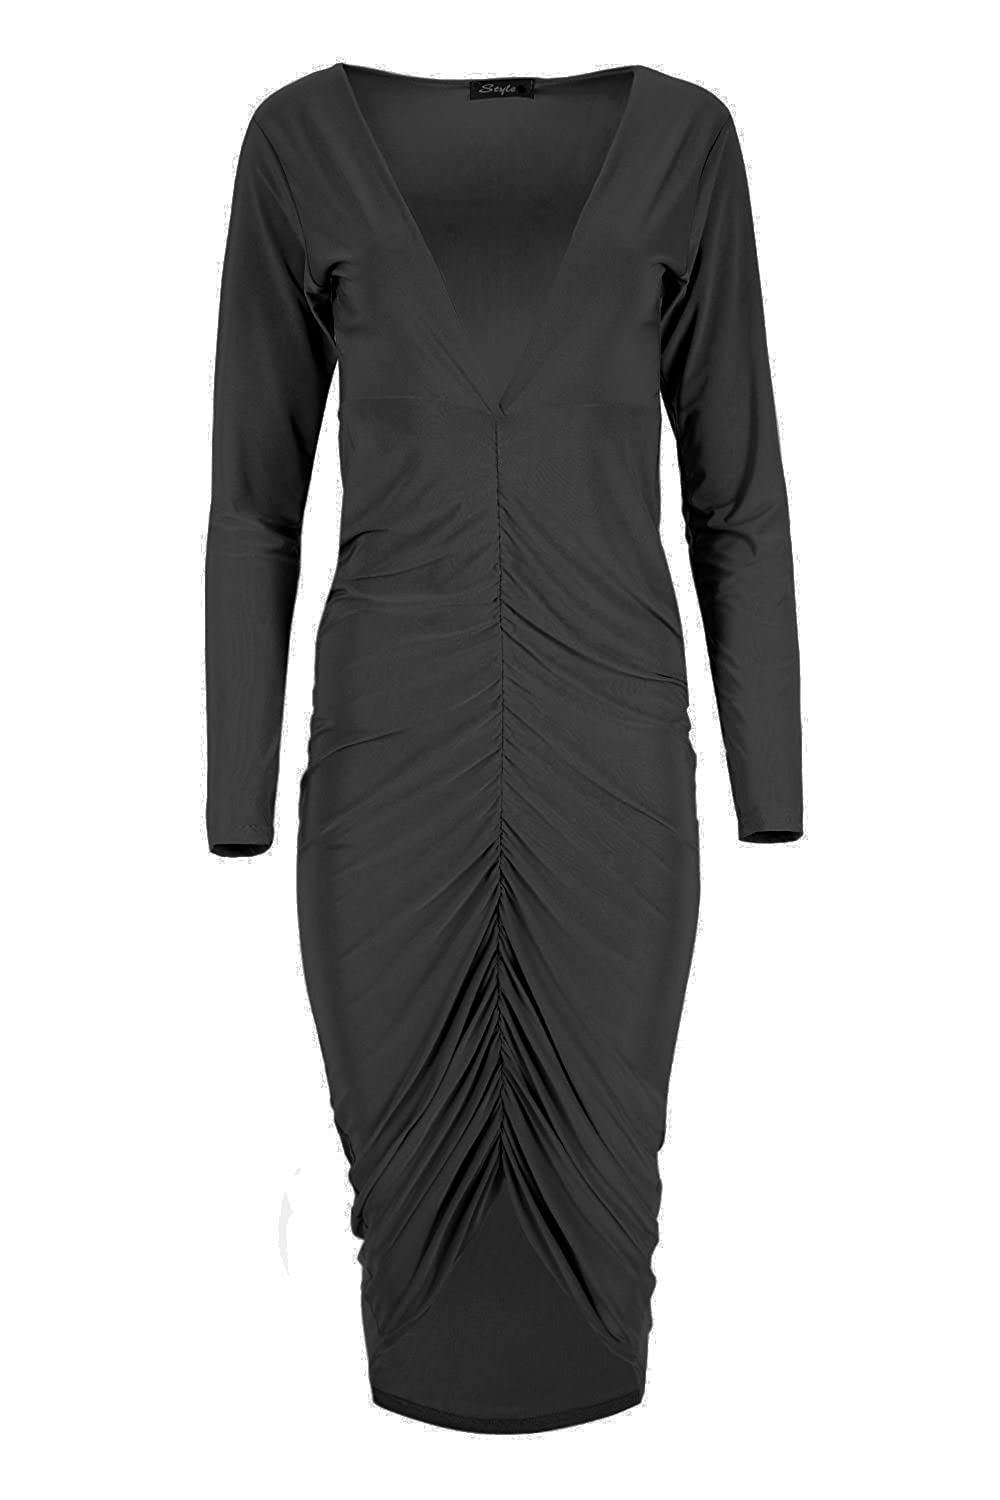 Amazon.com  Oops Outlet Women s V Neck Plunge Bodycon Fitted Slinky Middle  Ruched Midi Dress  Clothing 48cf26fe0